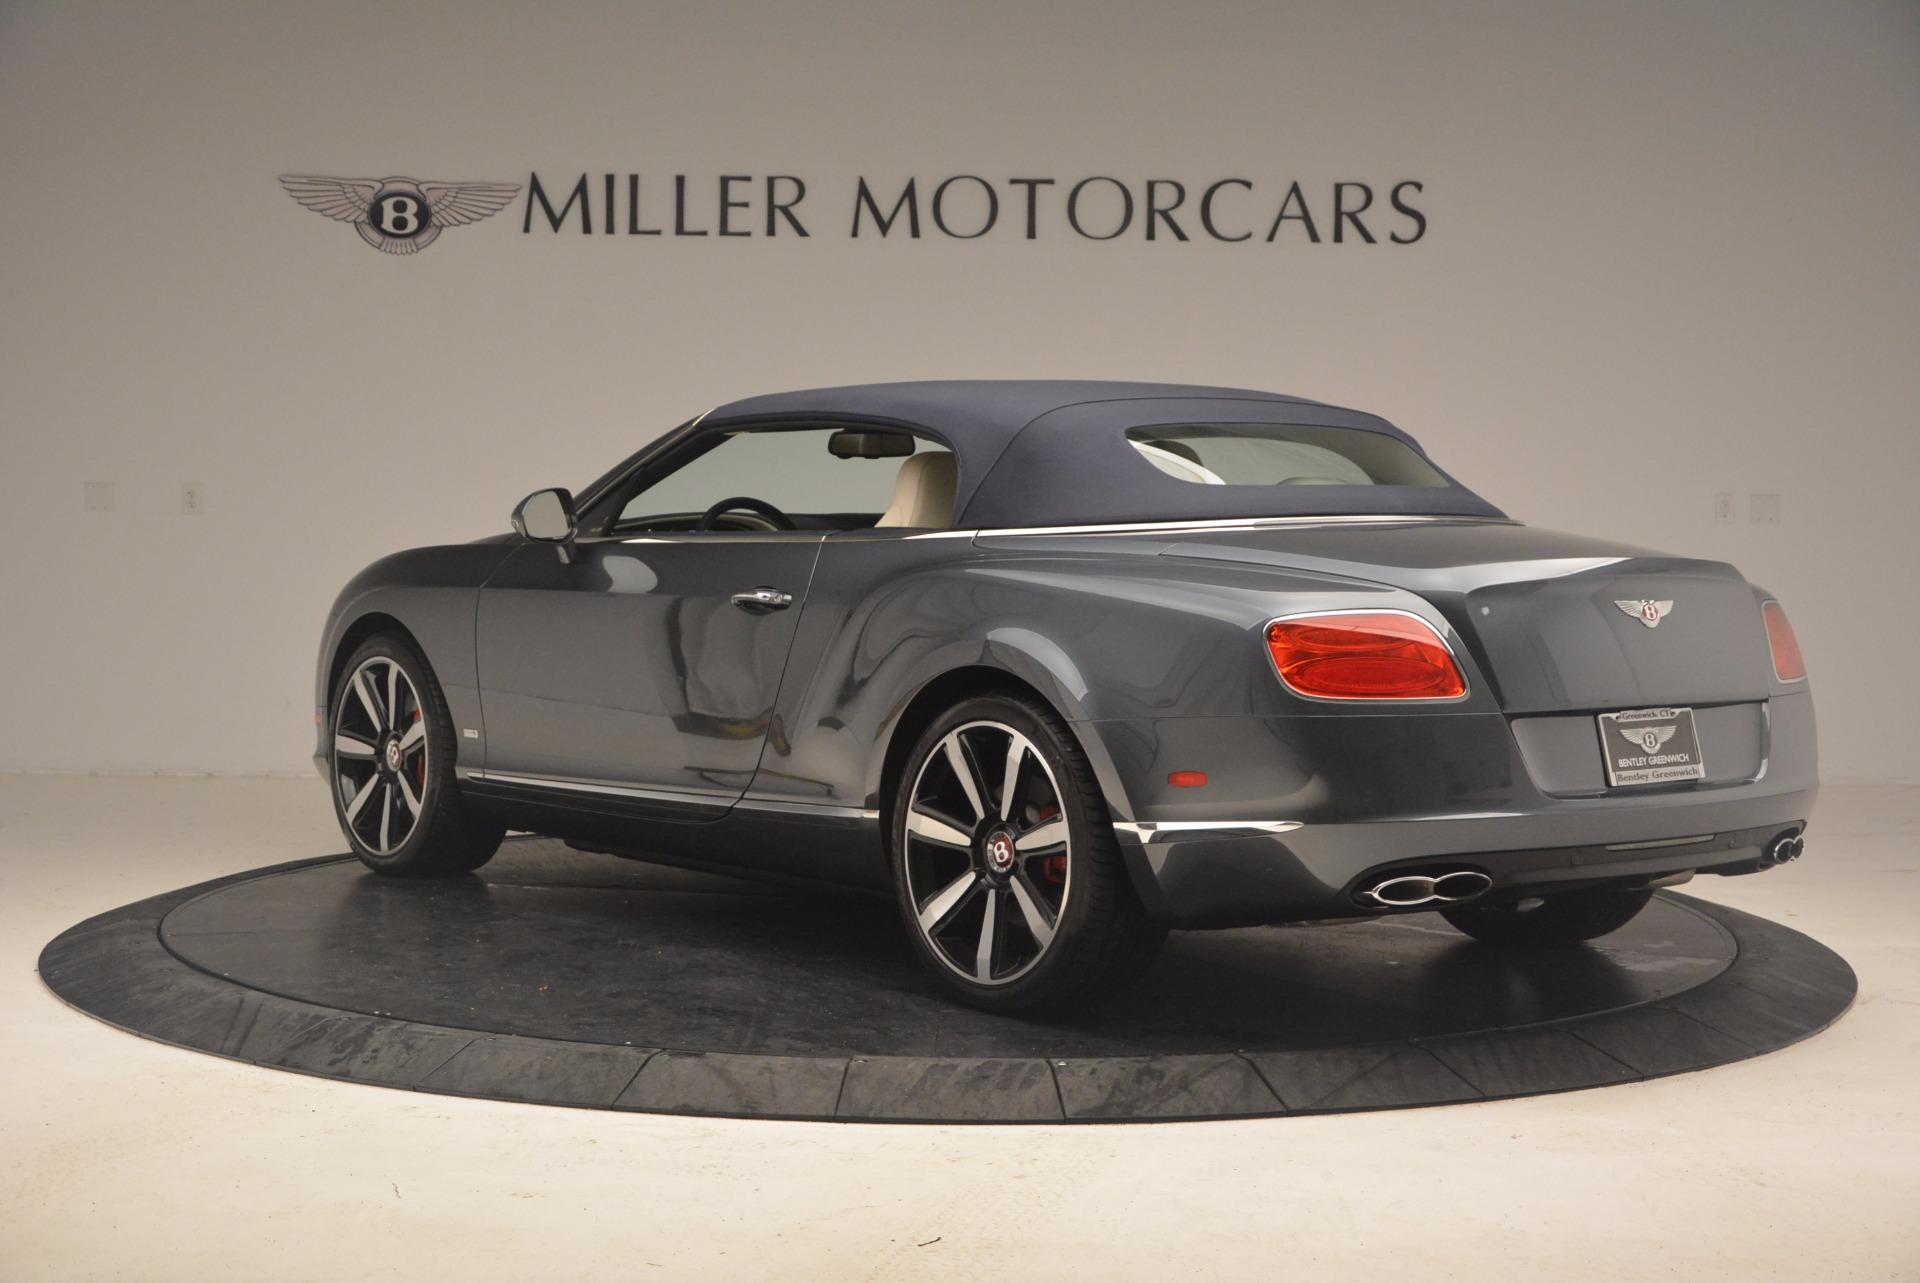 Used 2013 Bentley Continental GT V8 Le Mans Edition, 1 of 48 For Sale In Greenwich, CT 1288_p17